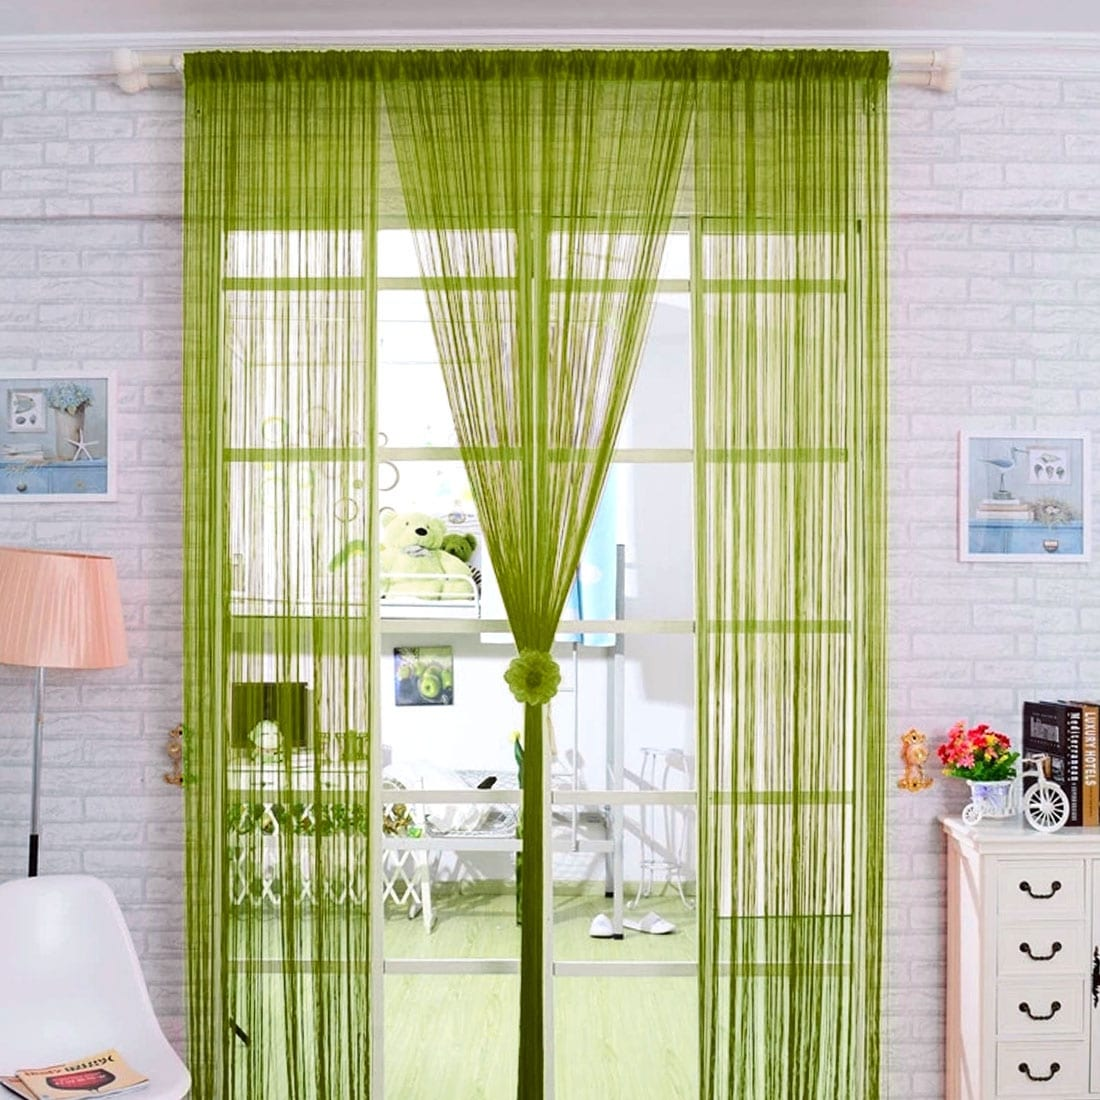 Shop Home Solid Rod Pocket String Curtains Panel Drapes for Window ...